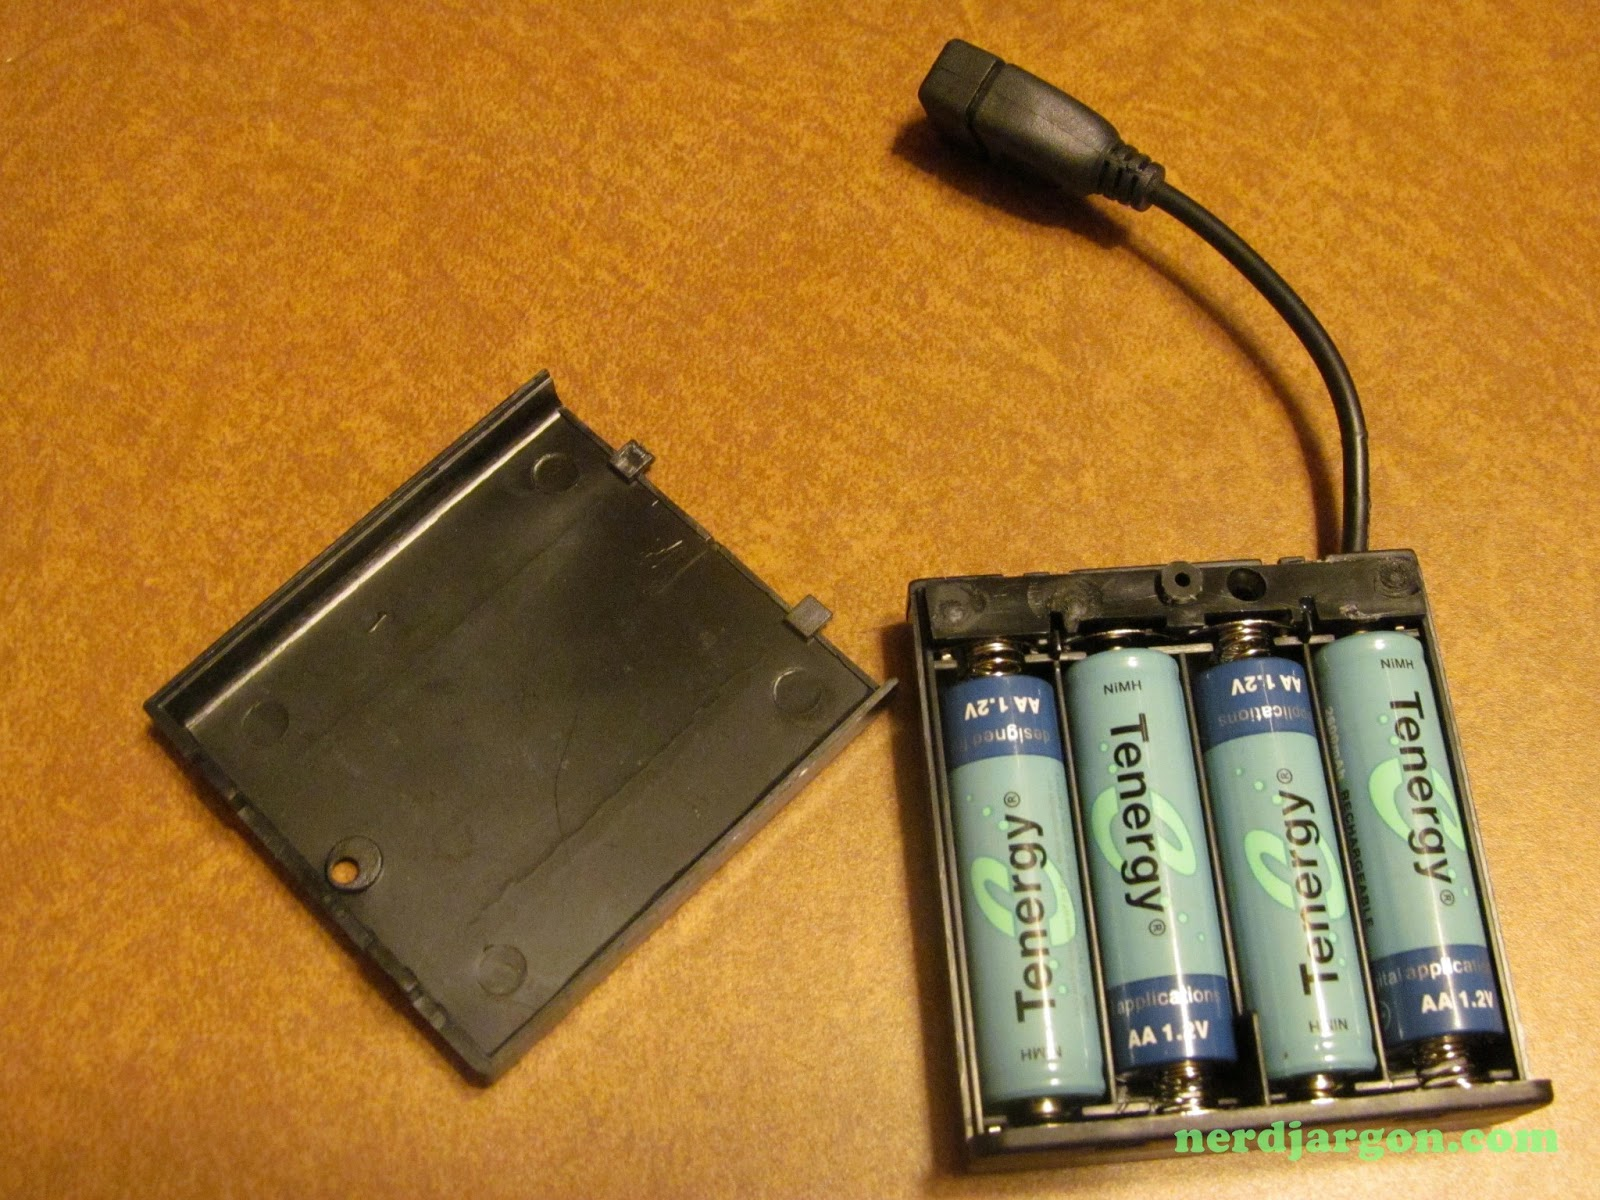 nerd jargon building an aa battery pack for charging usb devices. Black Bedroom Furniture Sets. Home Design Ideas